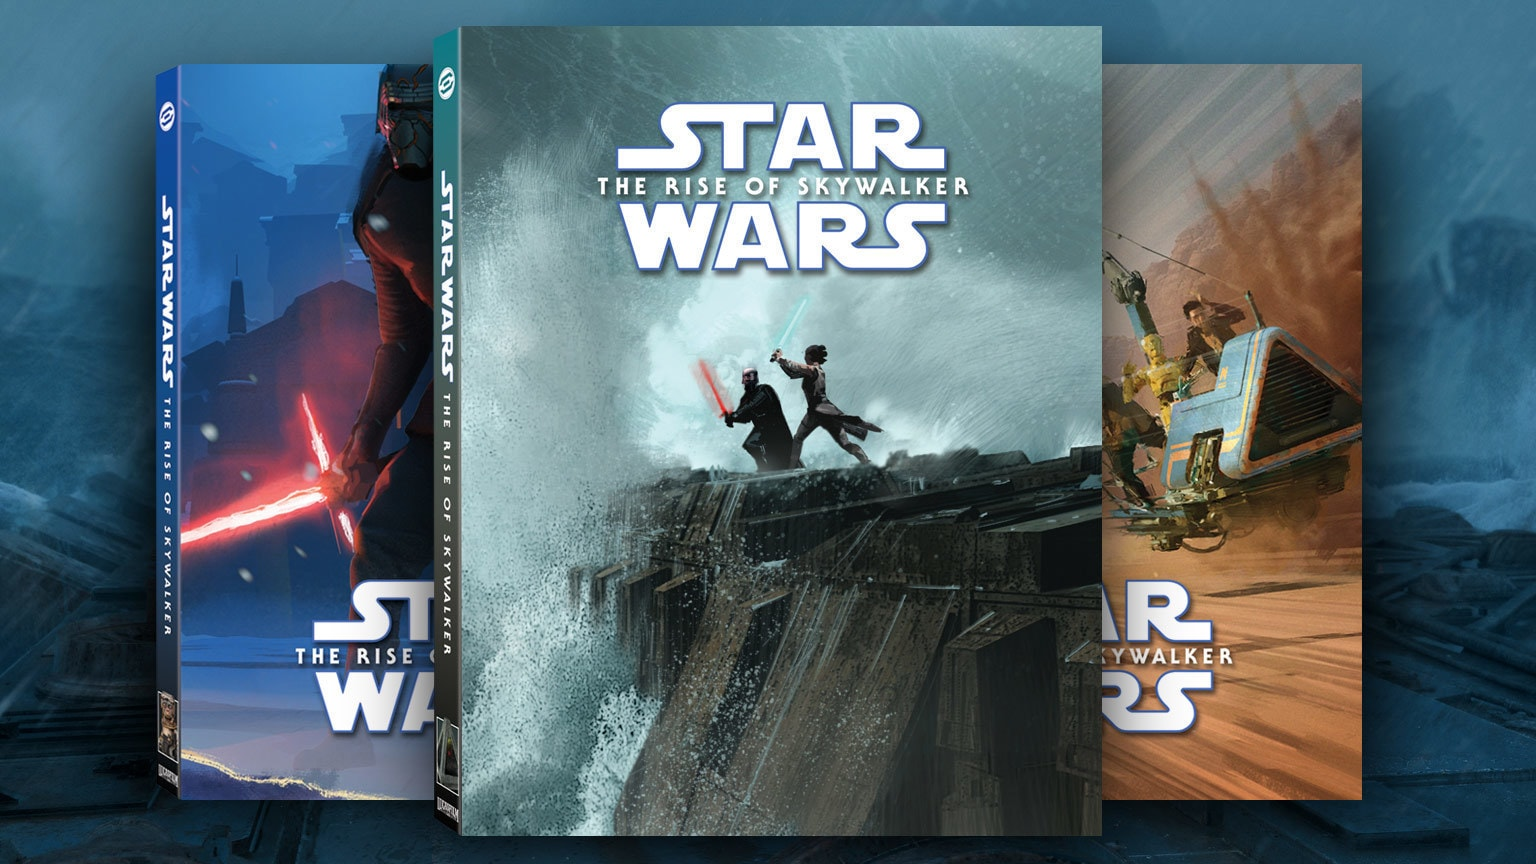 Customize Your Copy of Star Wars: The Rise of Skywalker with StarWars.com's Exclusive Covers